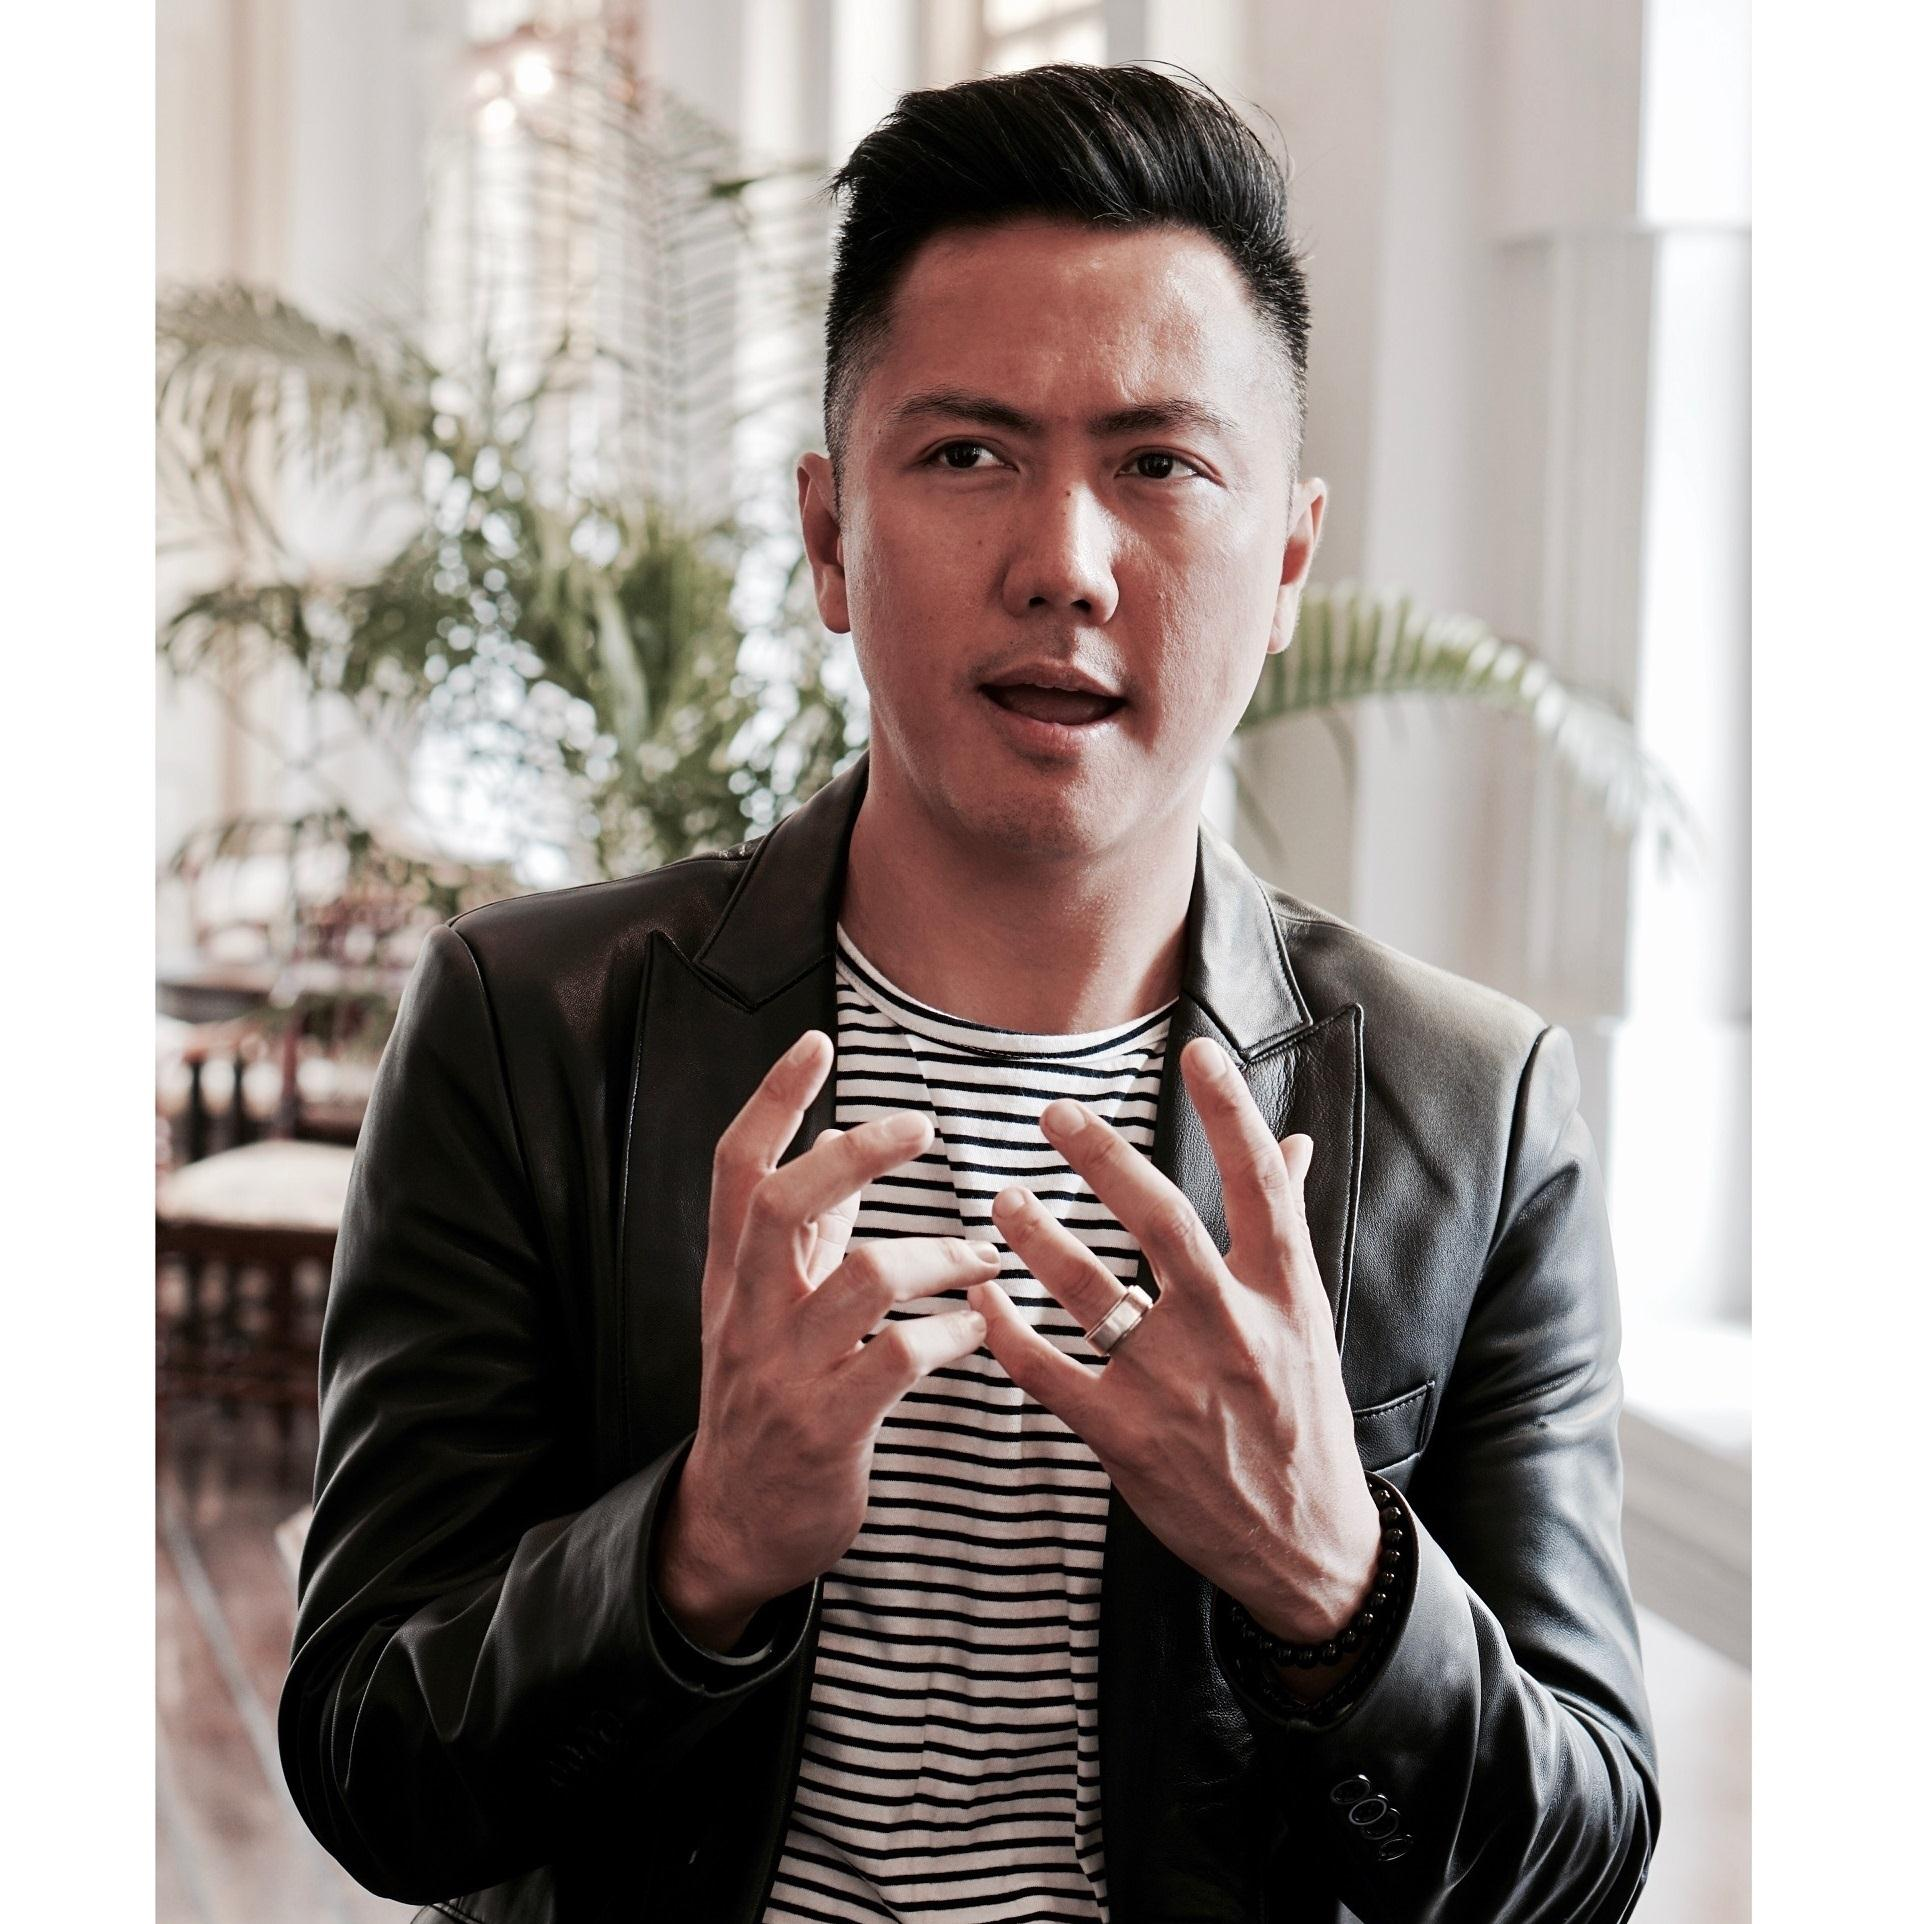 El Kwang CEO Biz Events Asia - S.JPG